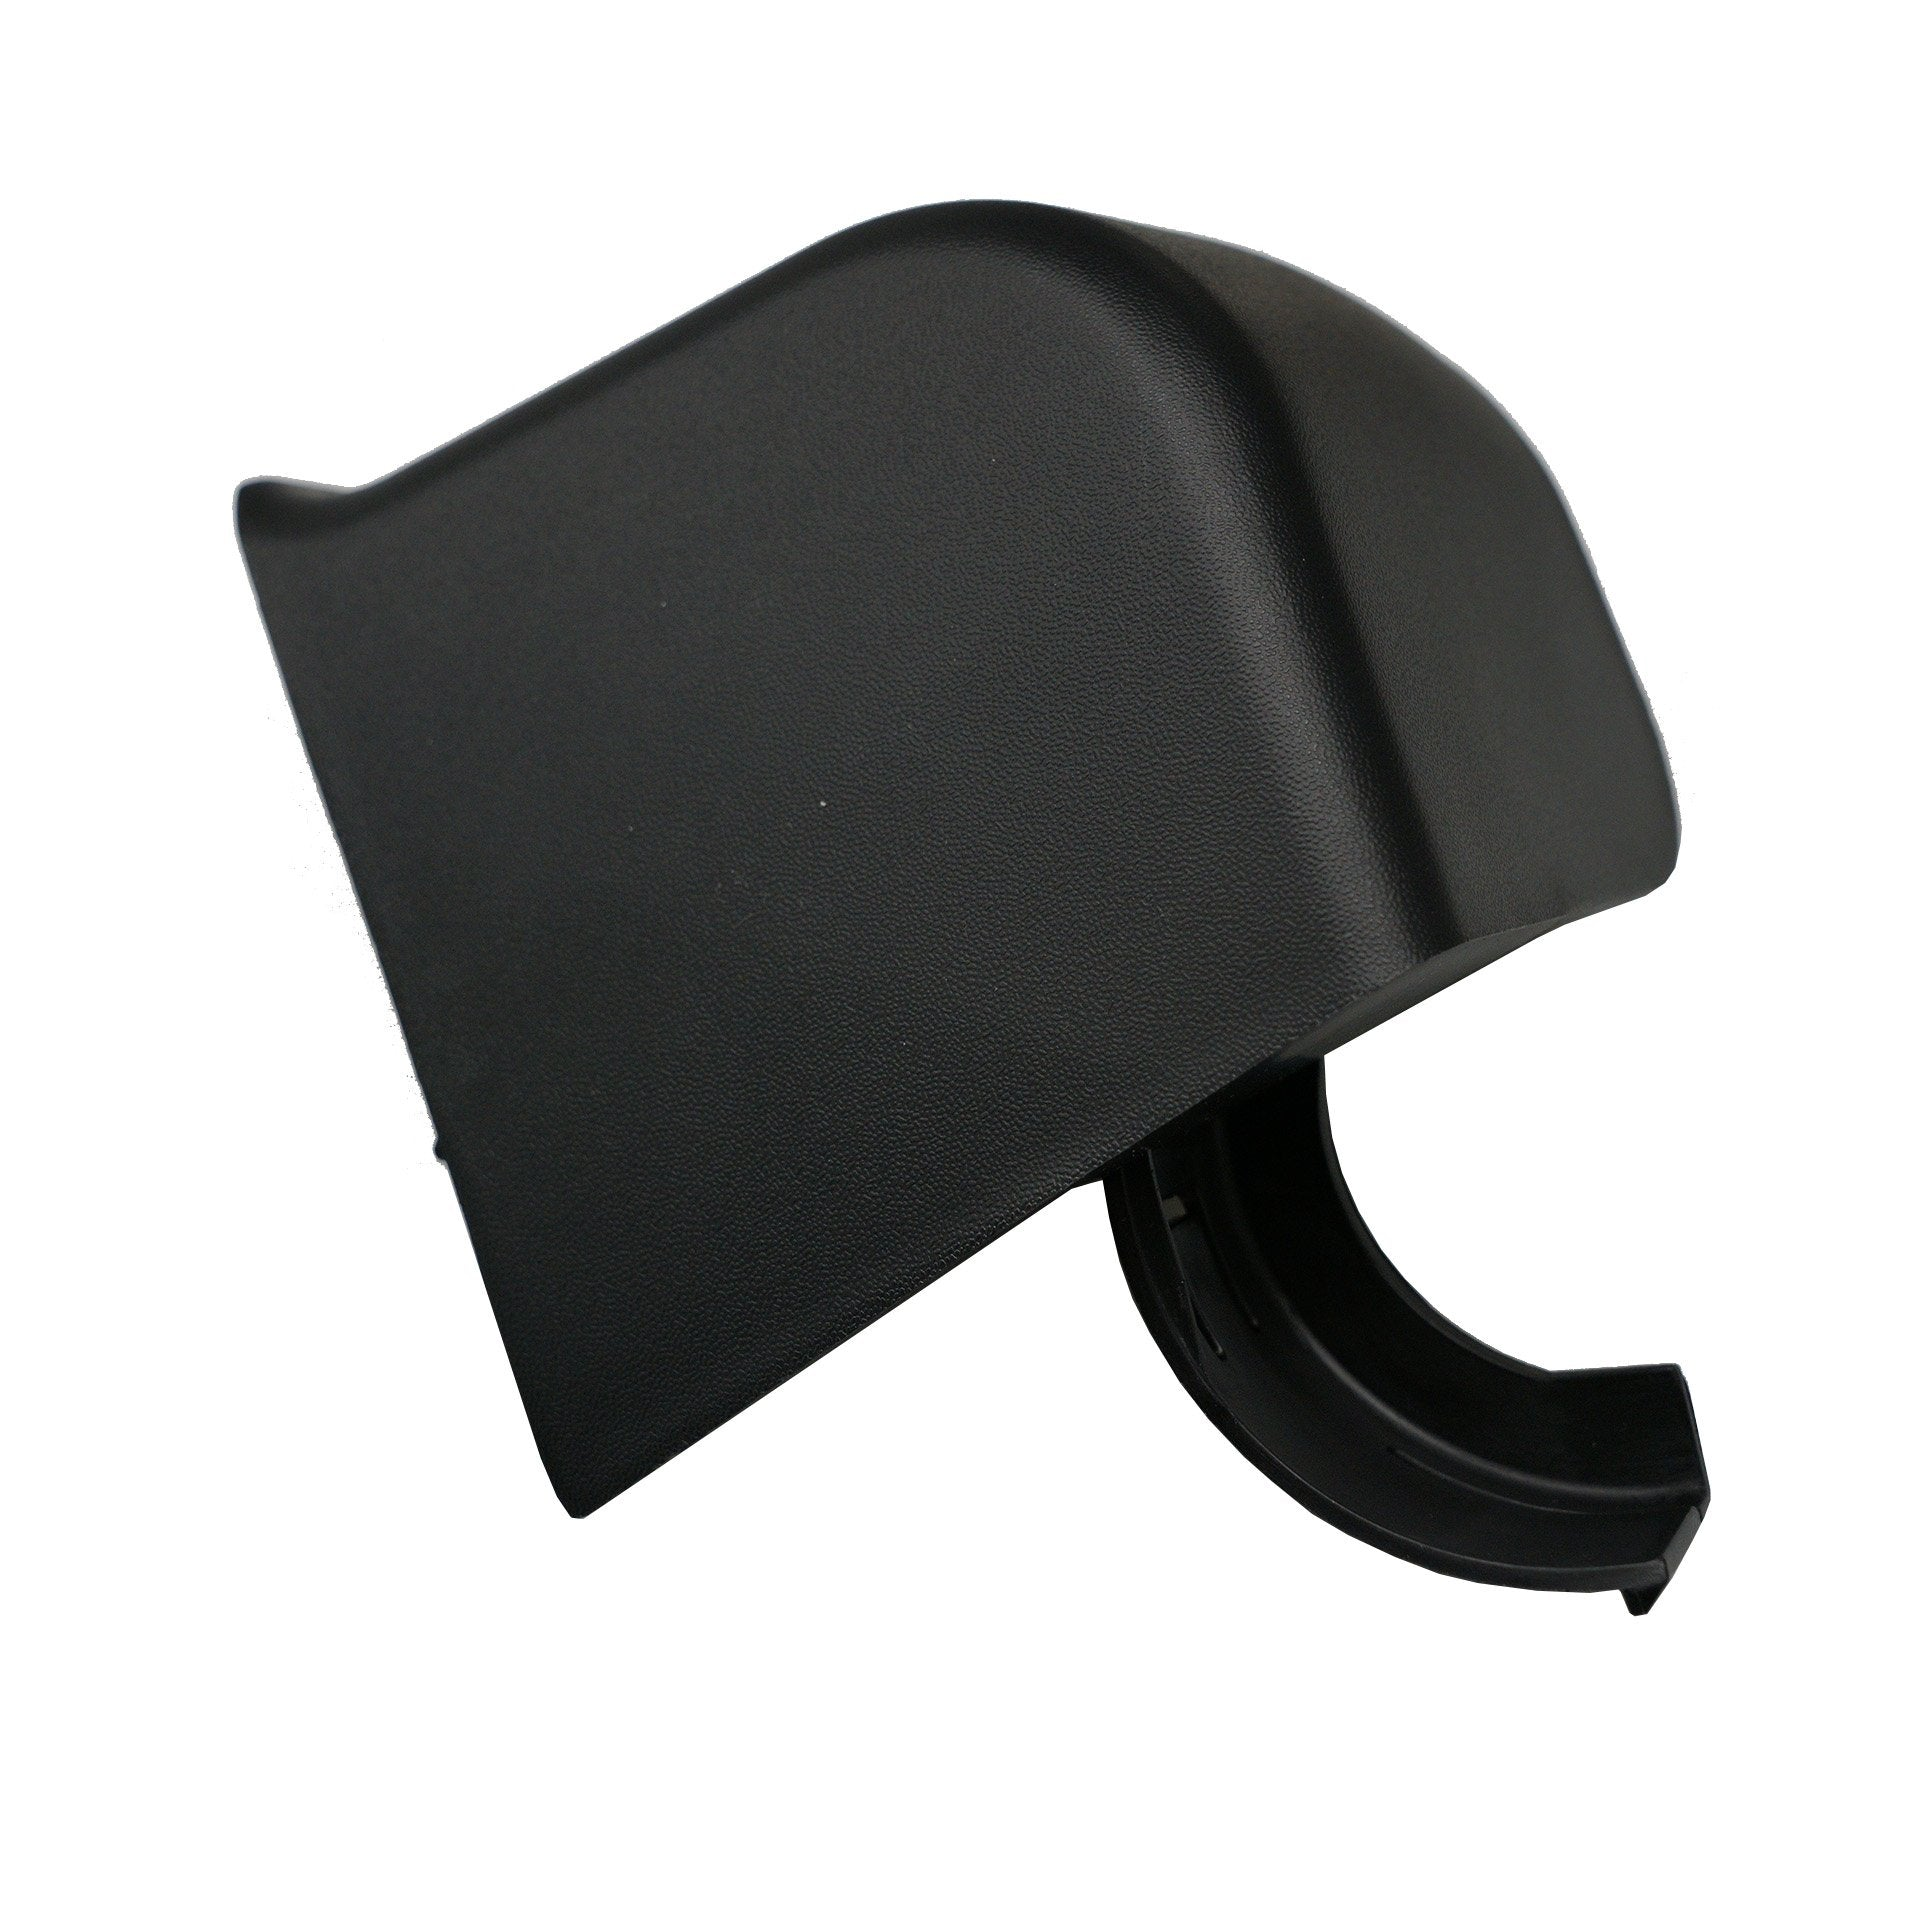 Side Panel Cover Lid SKU: 50520-FJ30A